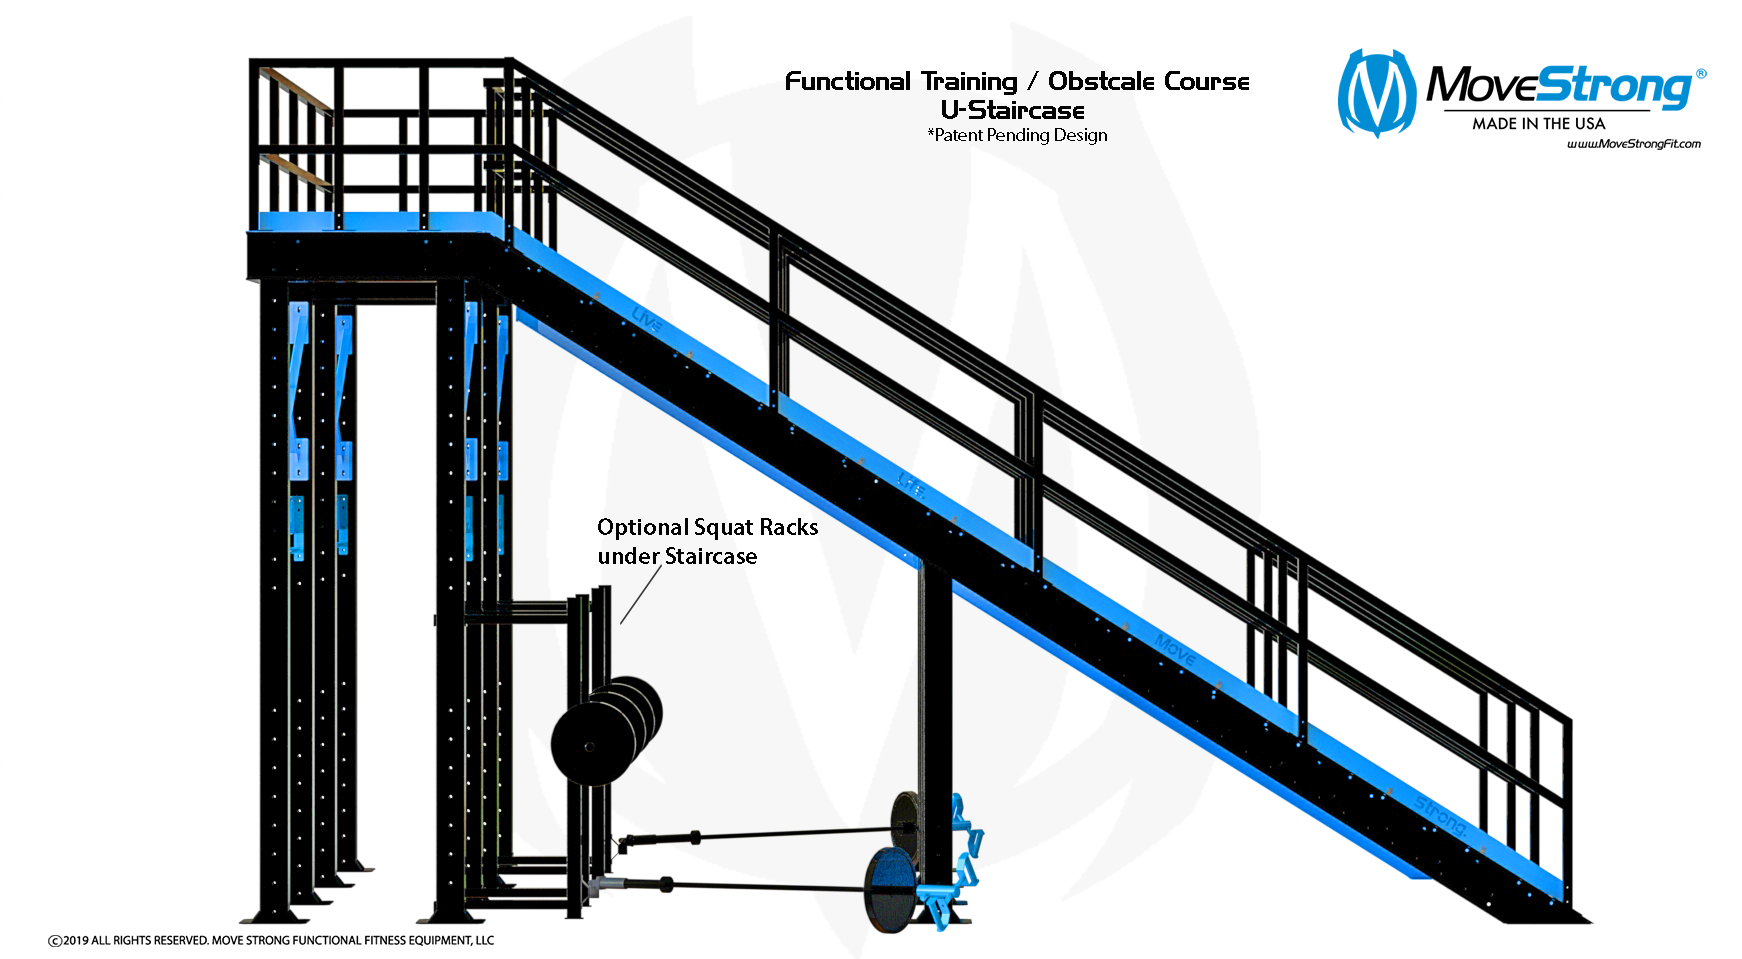 Functional Training Staircase and Squat Racks